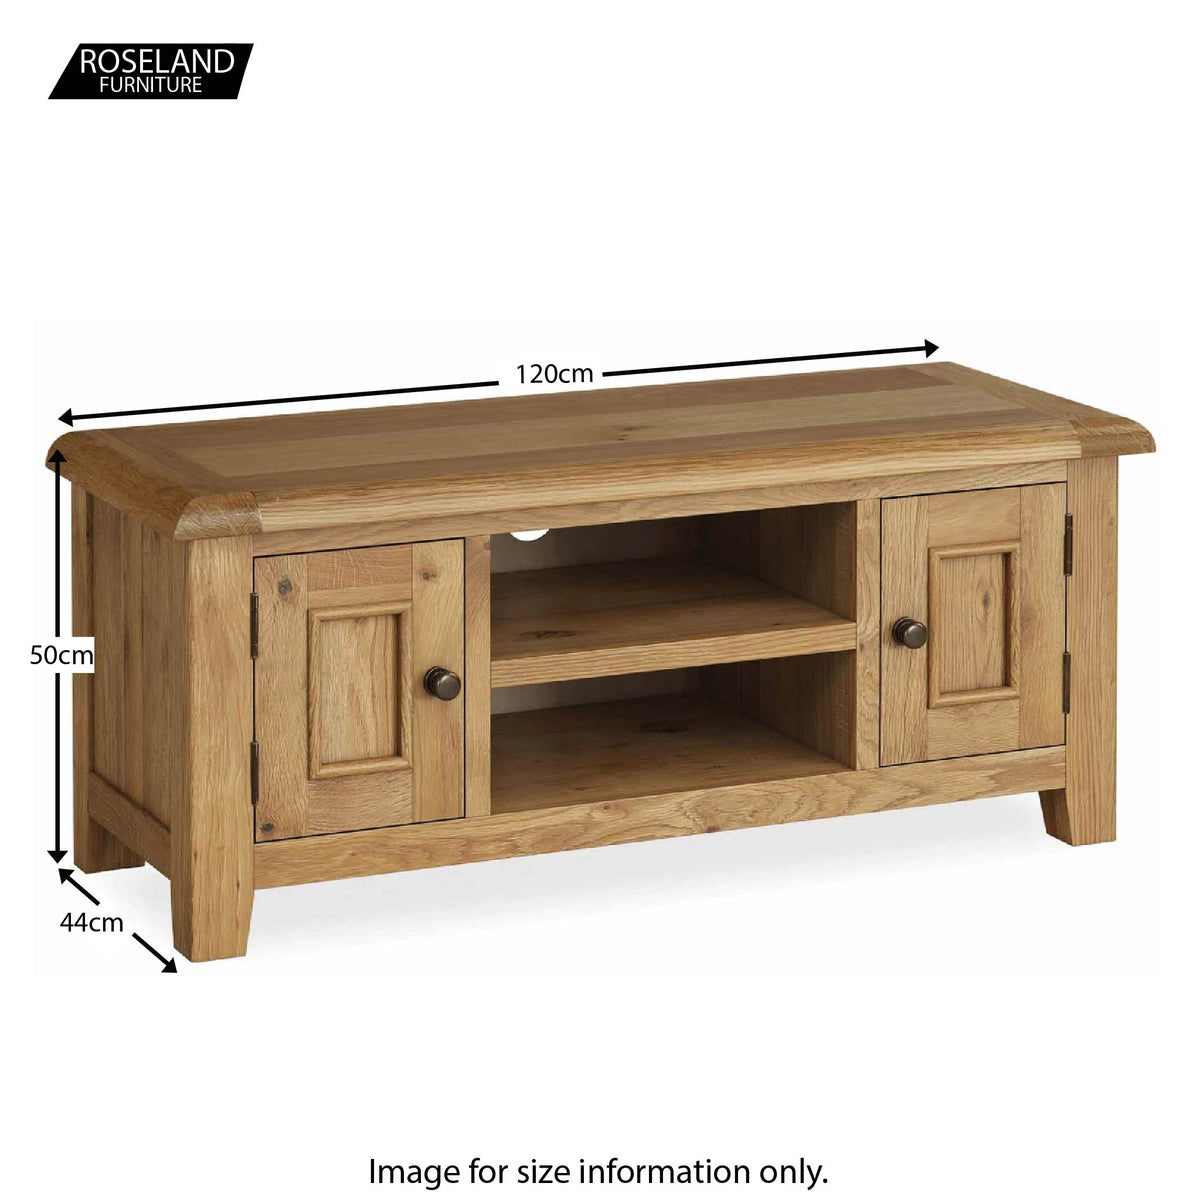 Canterbury 120cm Oak TV Stand - Size Guide